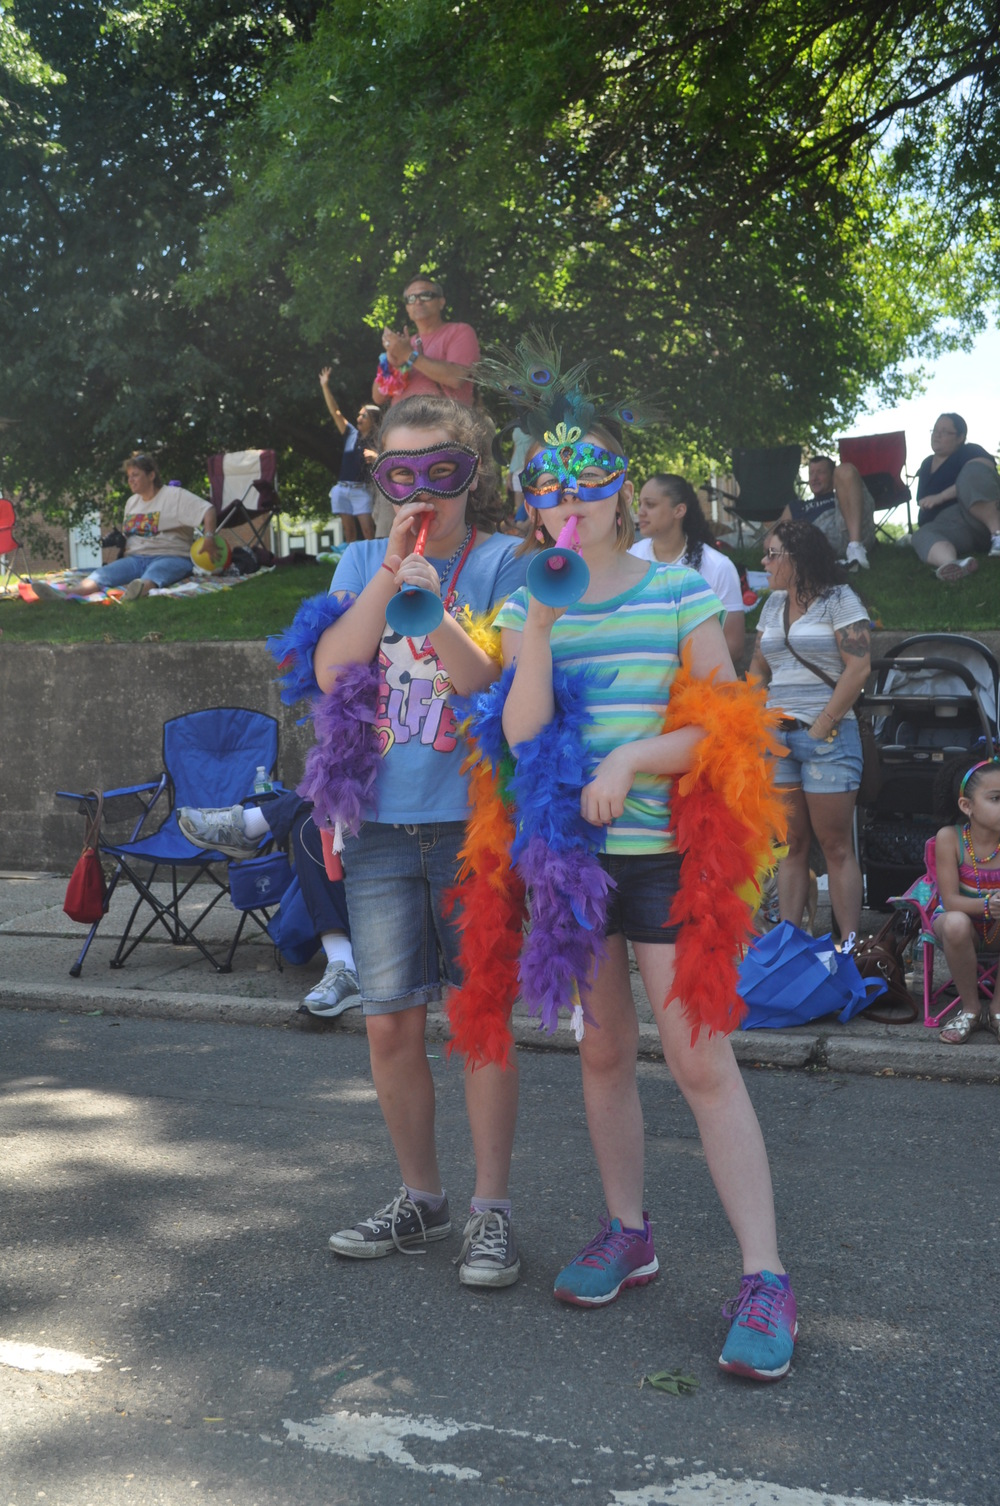 Young parade-goes make noise for pride in front of Town Hall.